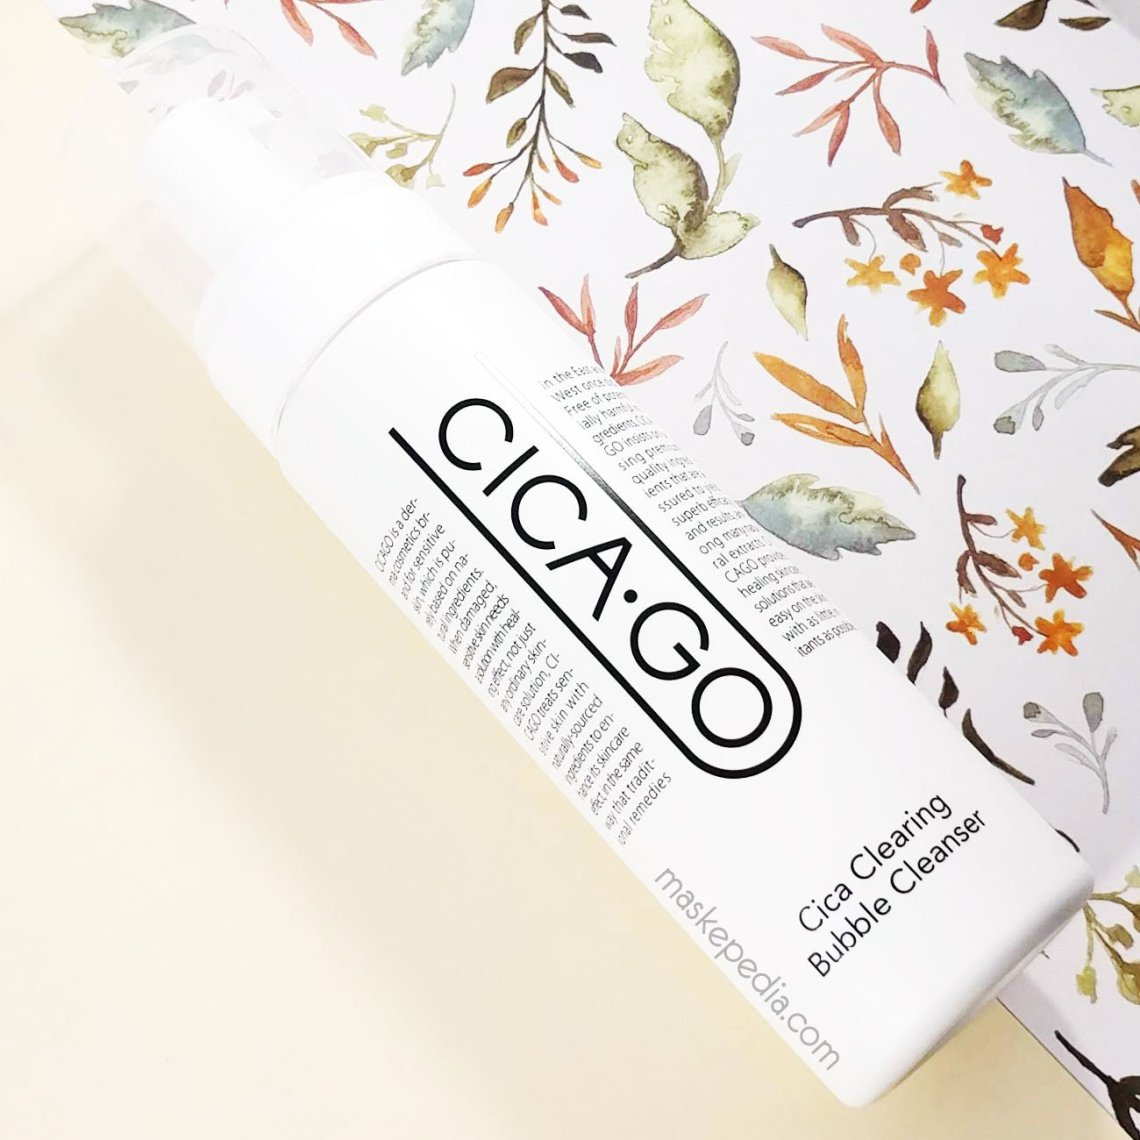 Cicago Cica Clearing Bubble Cleanser